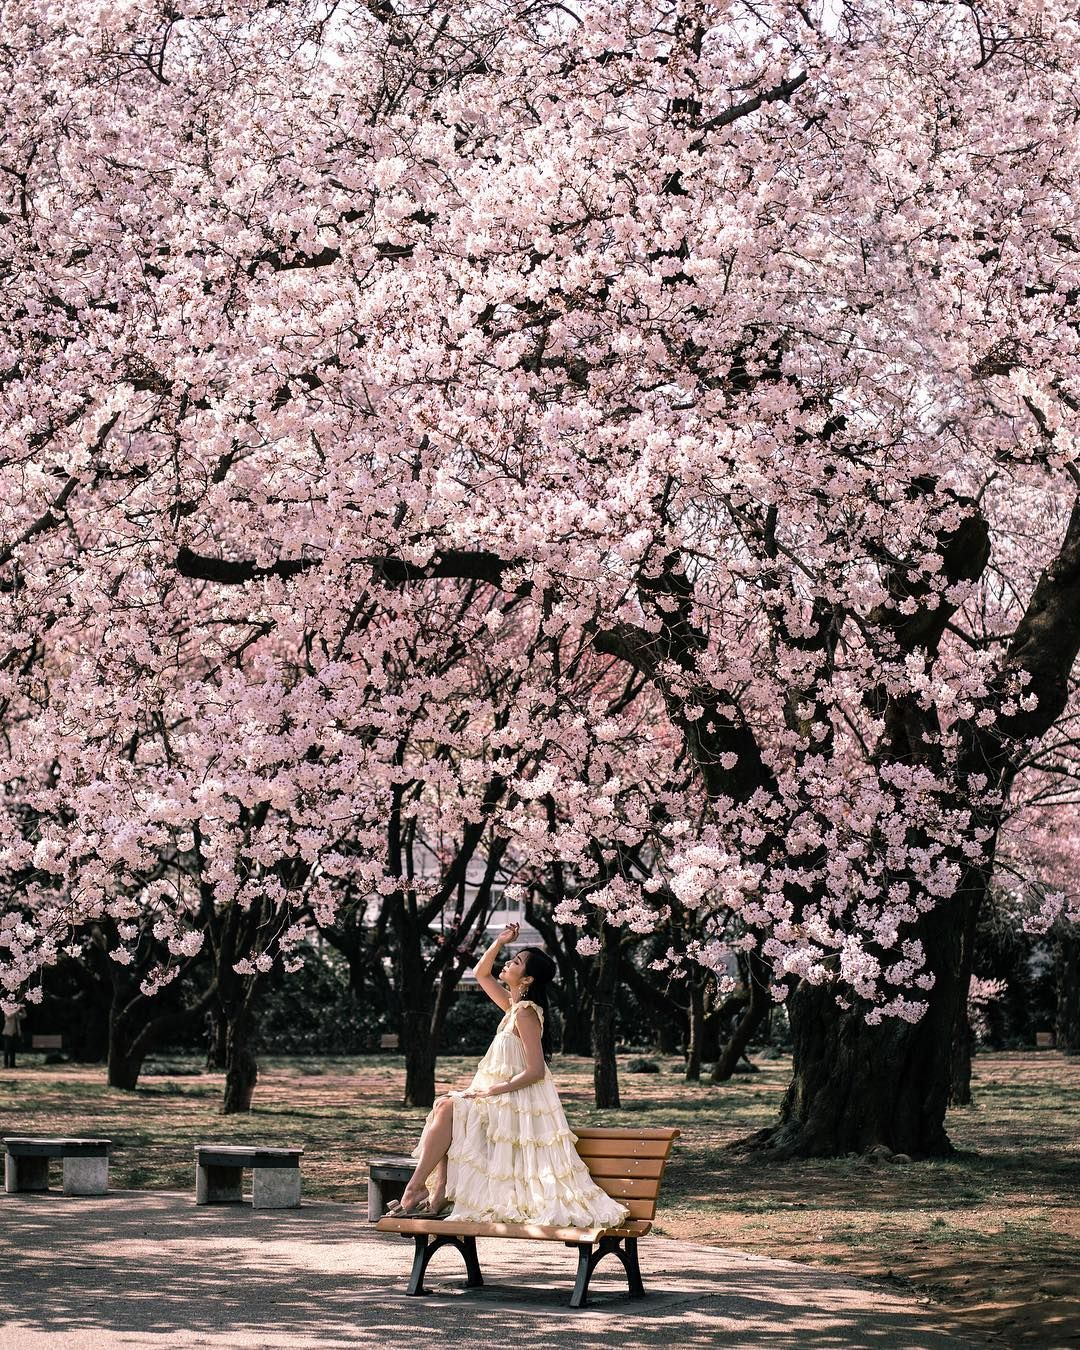 All Of The Best Spots In Tokyo To See The Cherry Blossoms In 2020 Where And When To Go The Best Pl Cherry Blossom Japan Cherry Blossom Tree Japan Photography